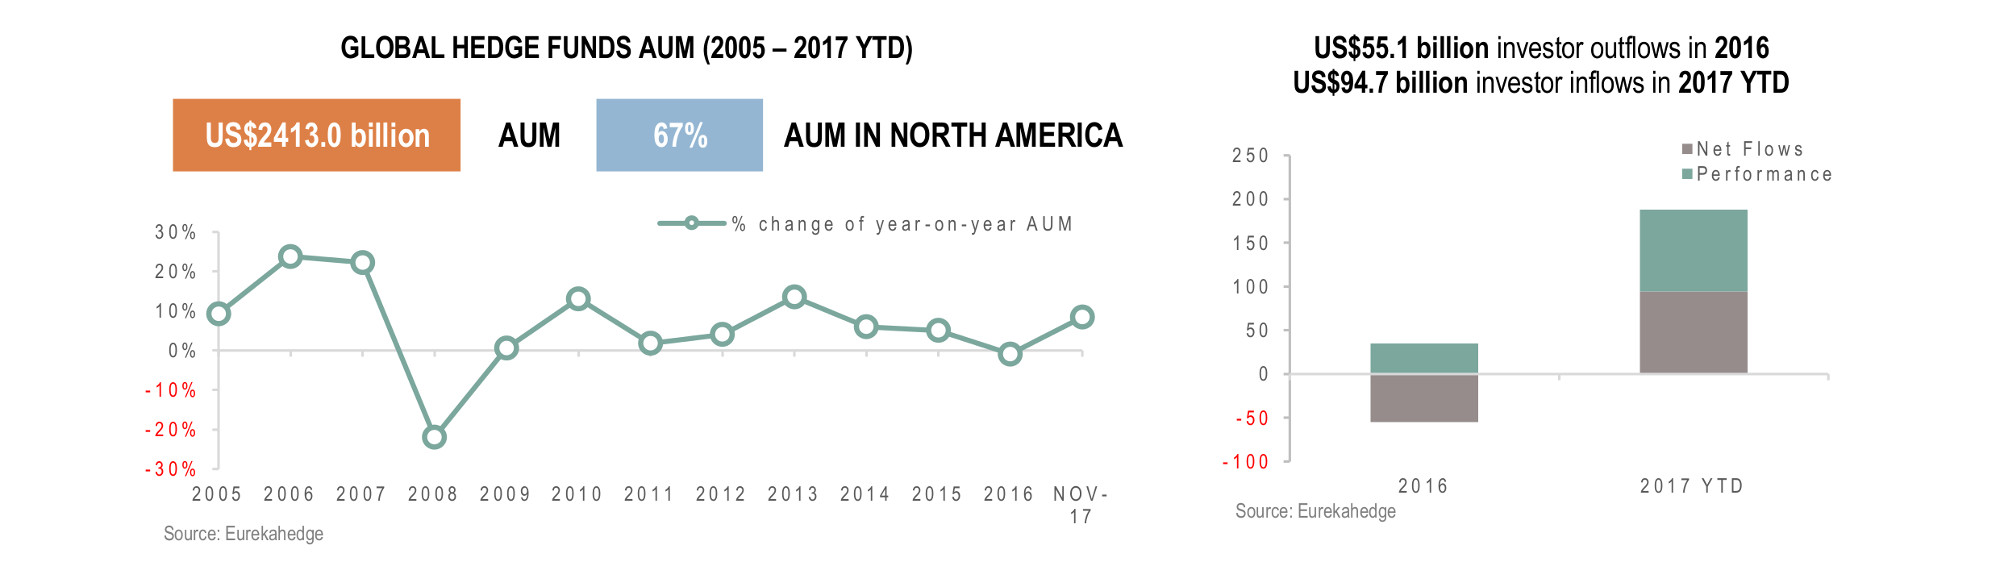 Global Hedge Funds Infographic January 2018 - AUM